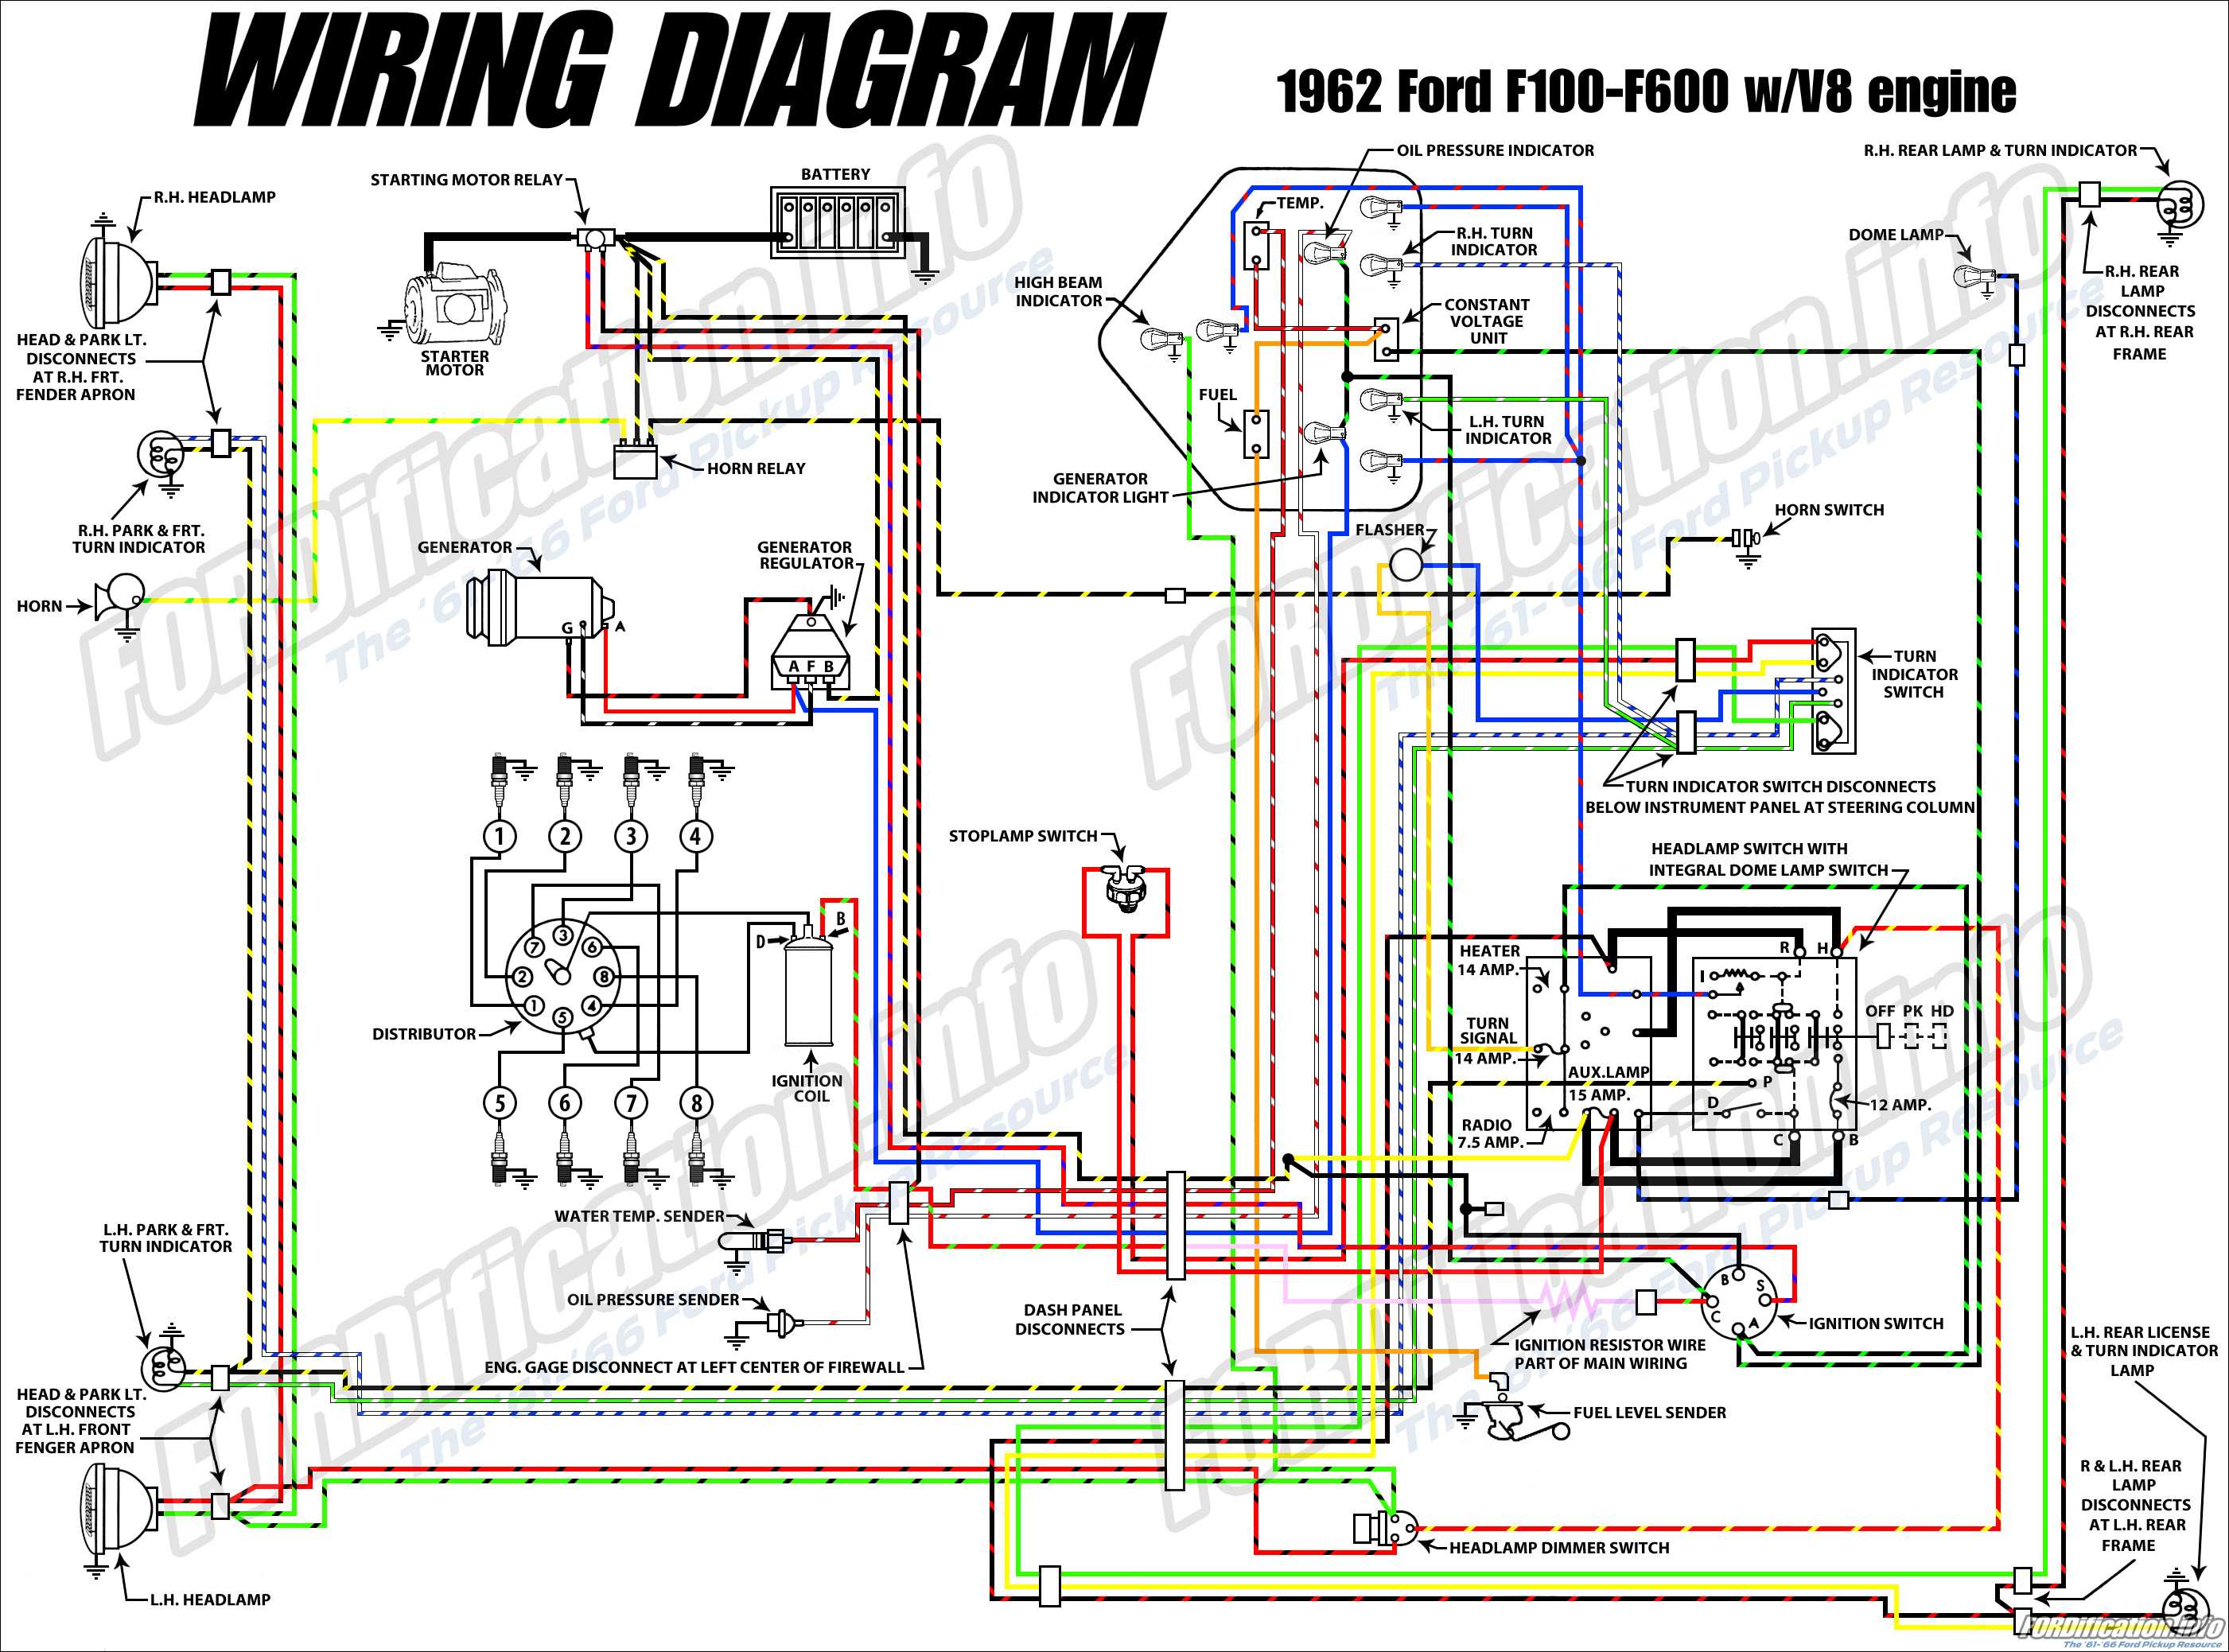 1968 Ford Truck Alternator Wiring Diagram Essick Air Humidifier Fan Motor Wiring Schematics For An Vga Dvi D Jeanjaures37 Fr